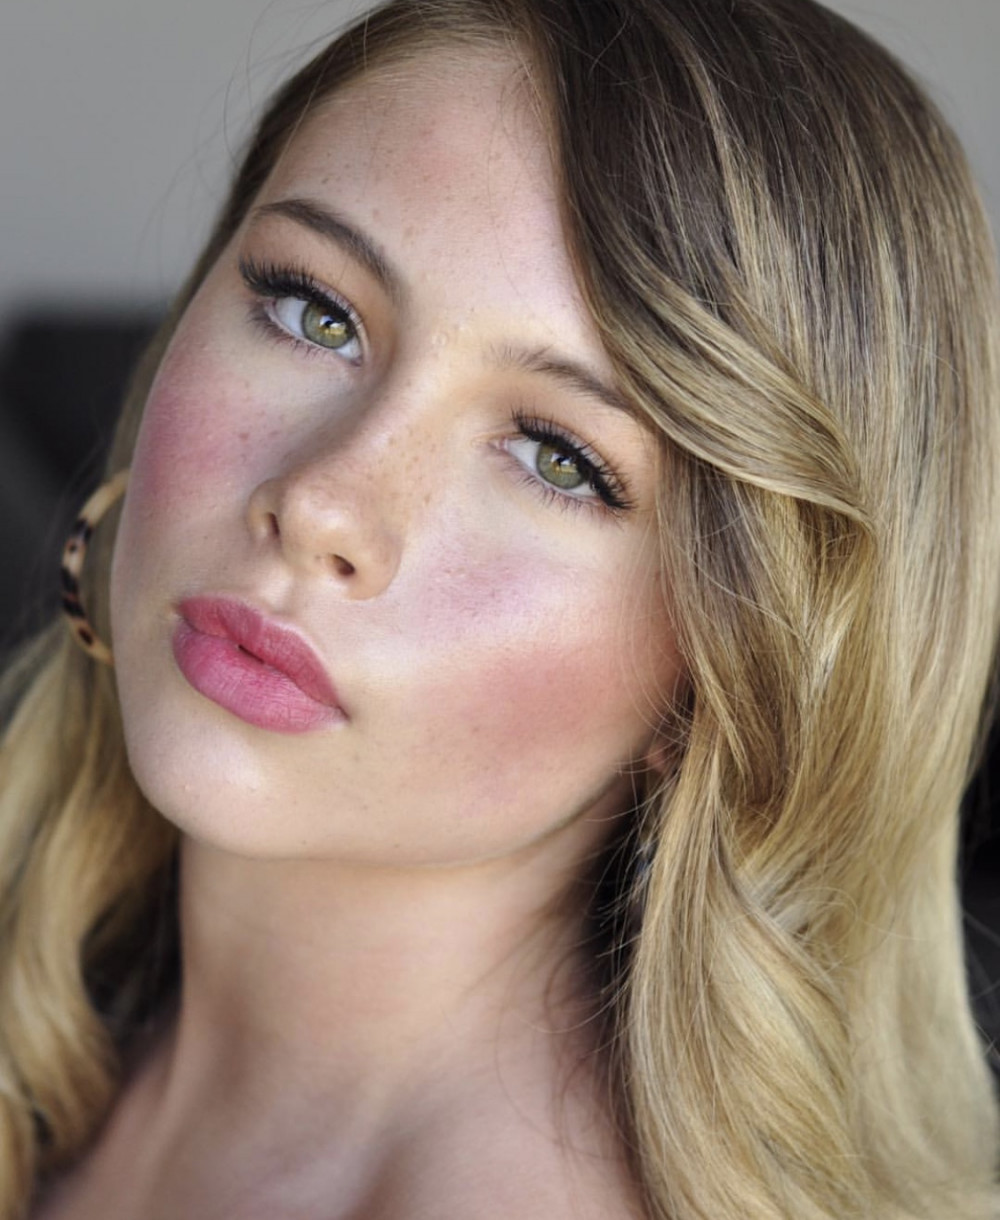 Beautiful summer bridal makeup with pink cheeks and freckles on bride with green eyes